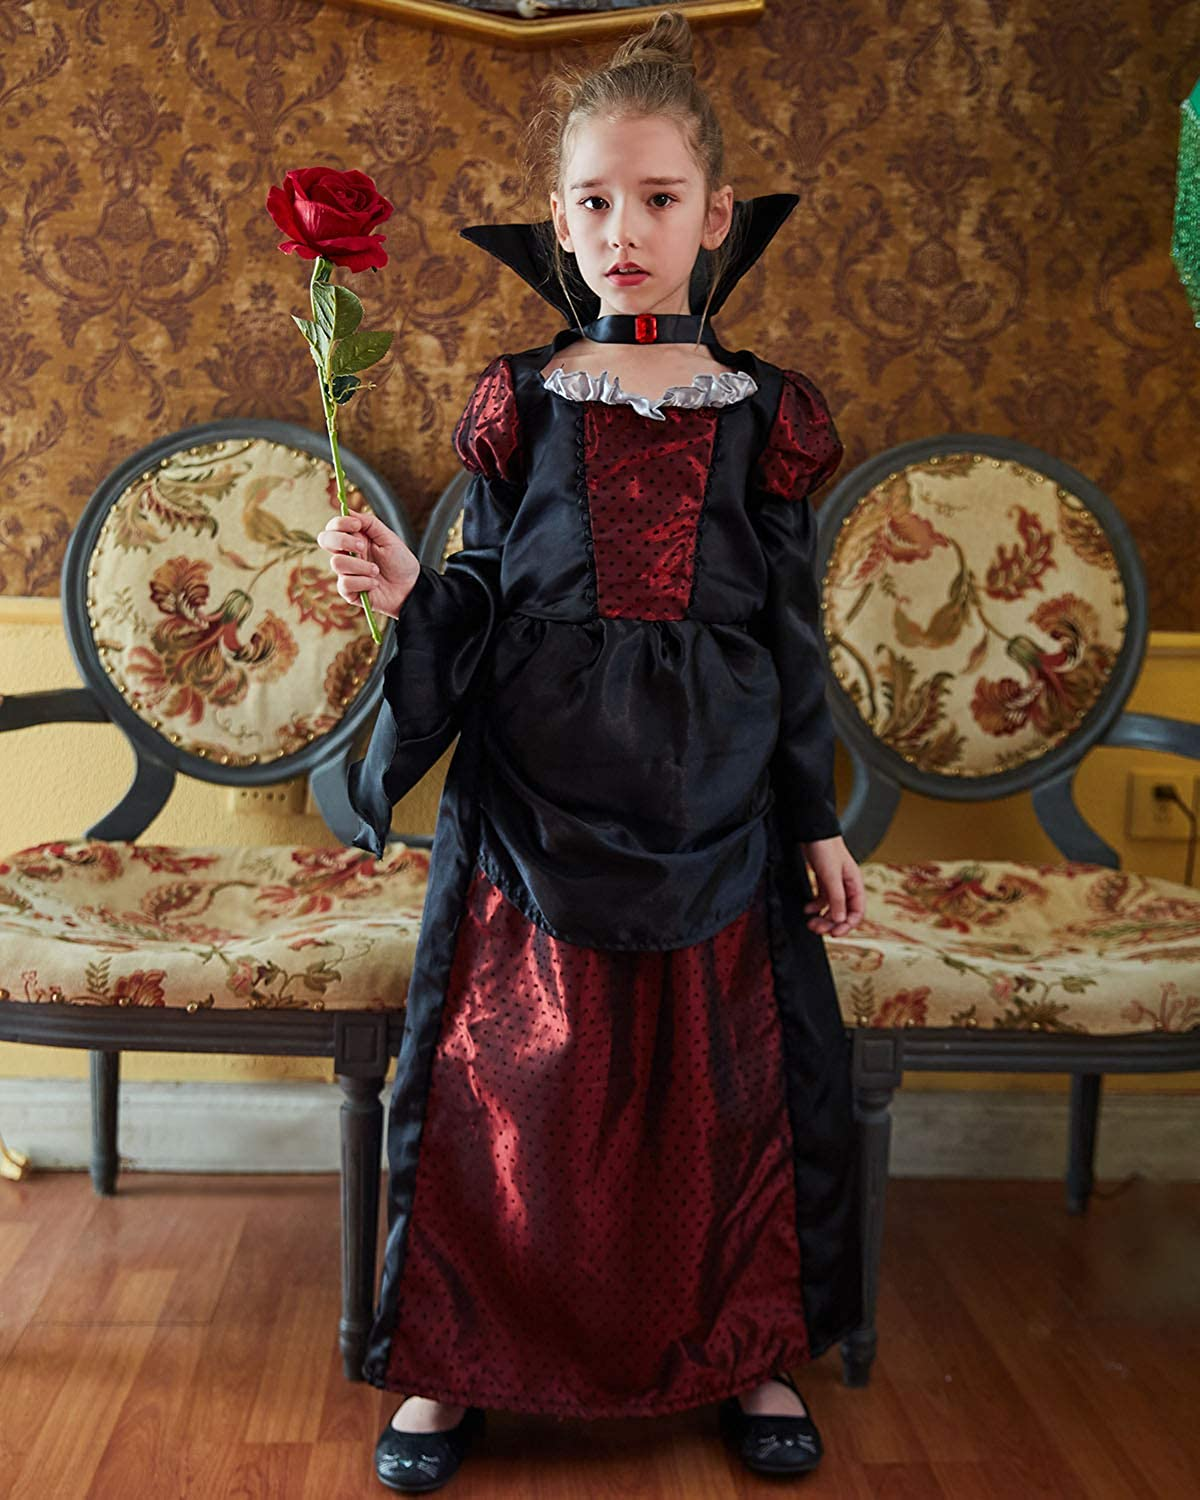 B Bascolor Vampire Costume for Girls Kids Halloween Costume Vampire Princess Dress Up Halloween Party Pretend Role Play